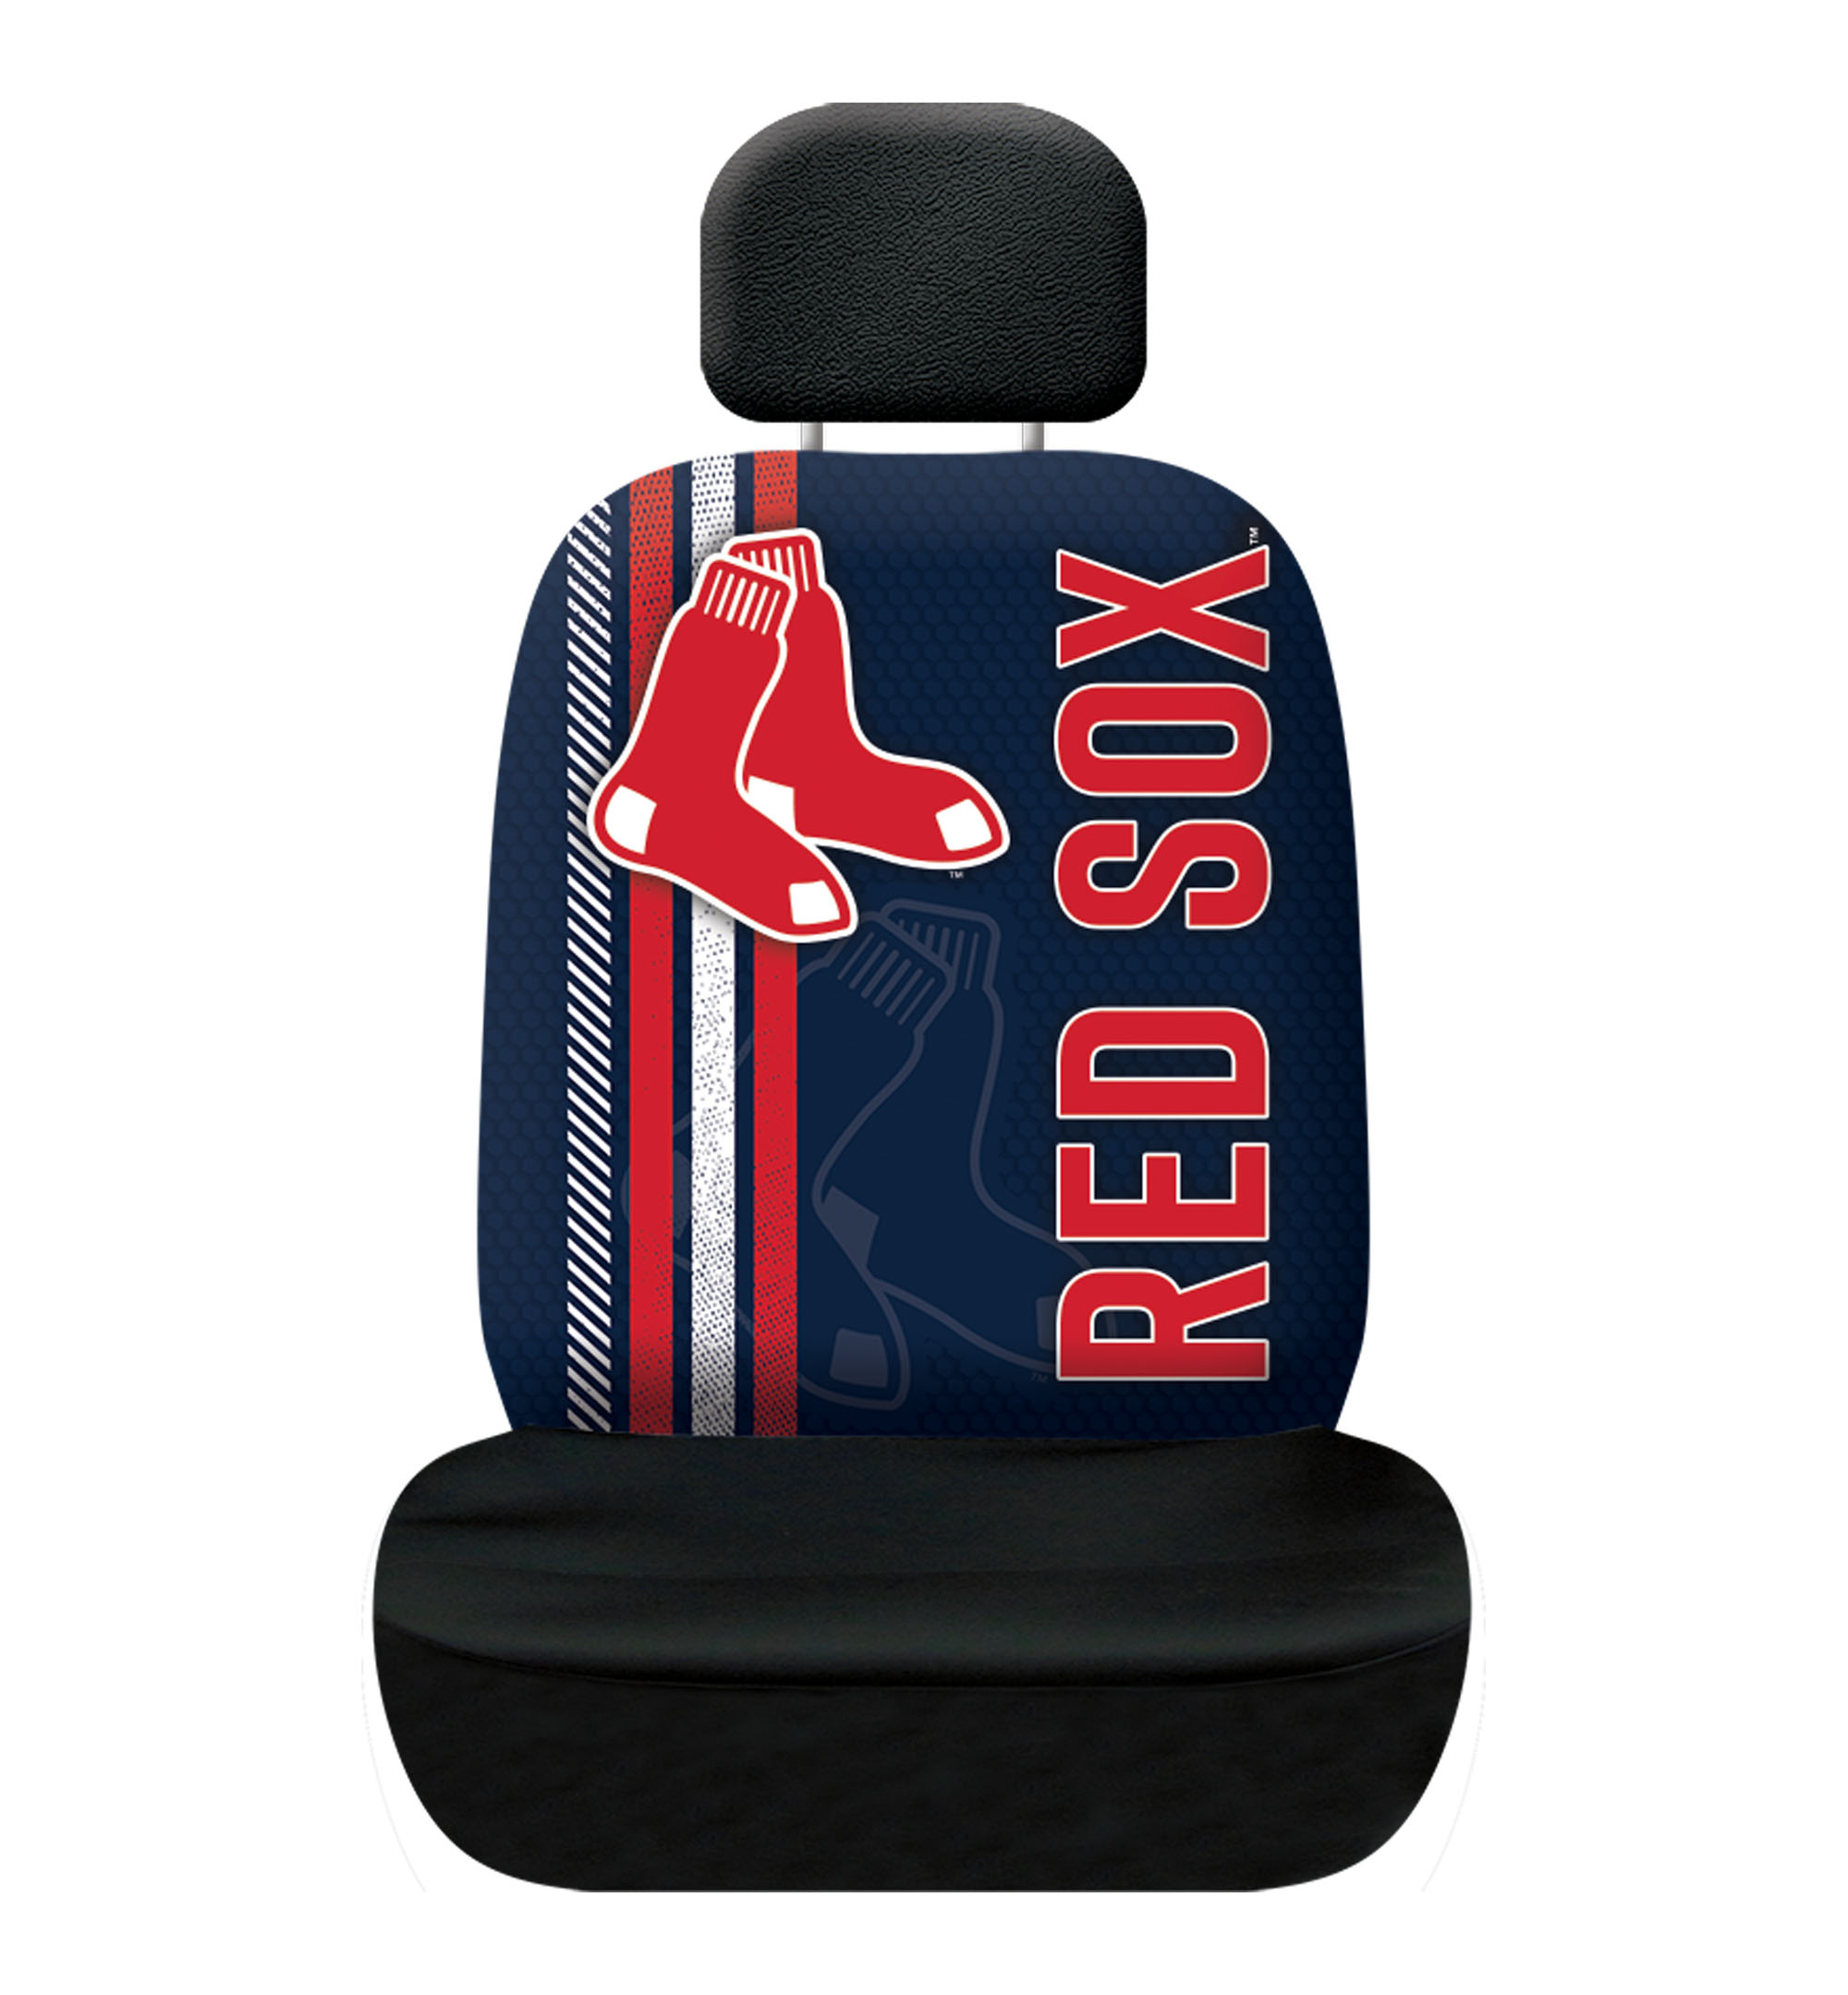 MLB Boston Red Sox Rally Seat Cover